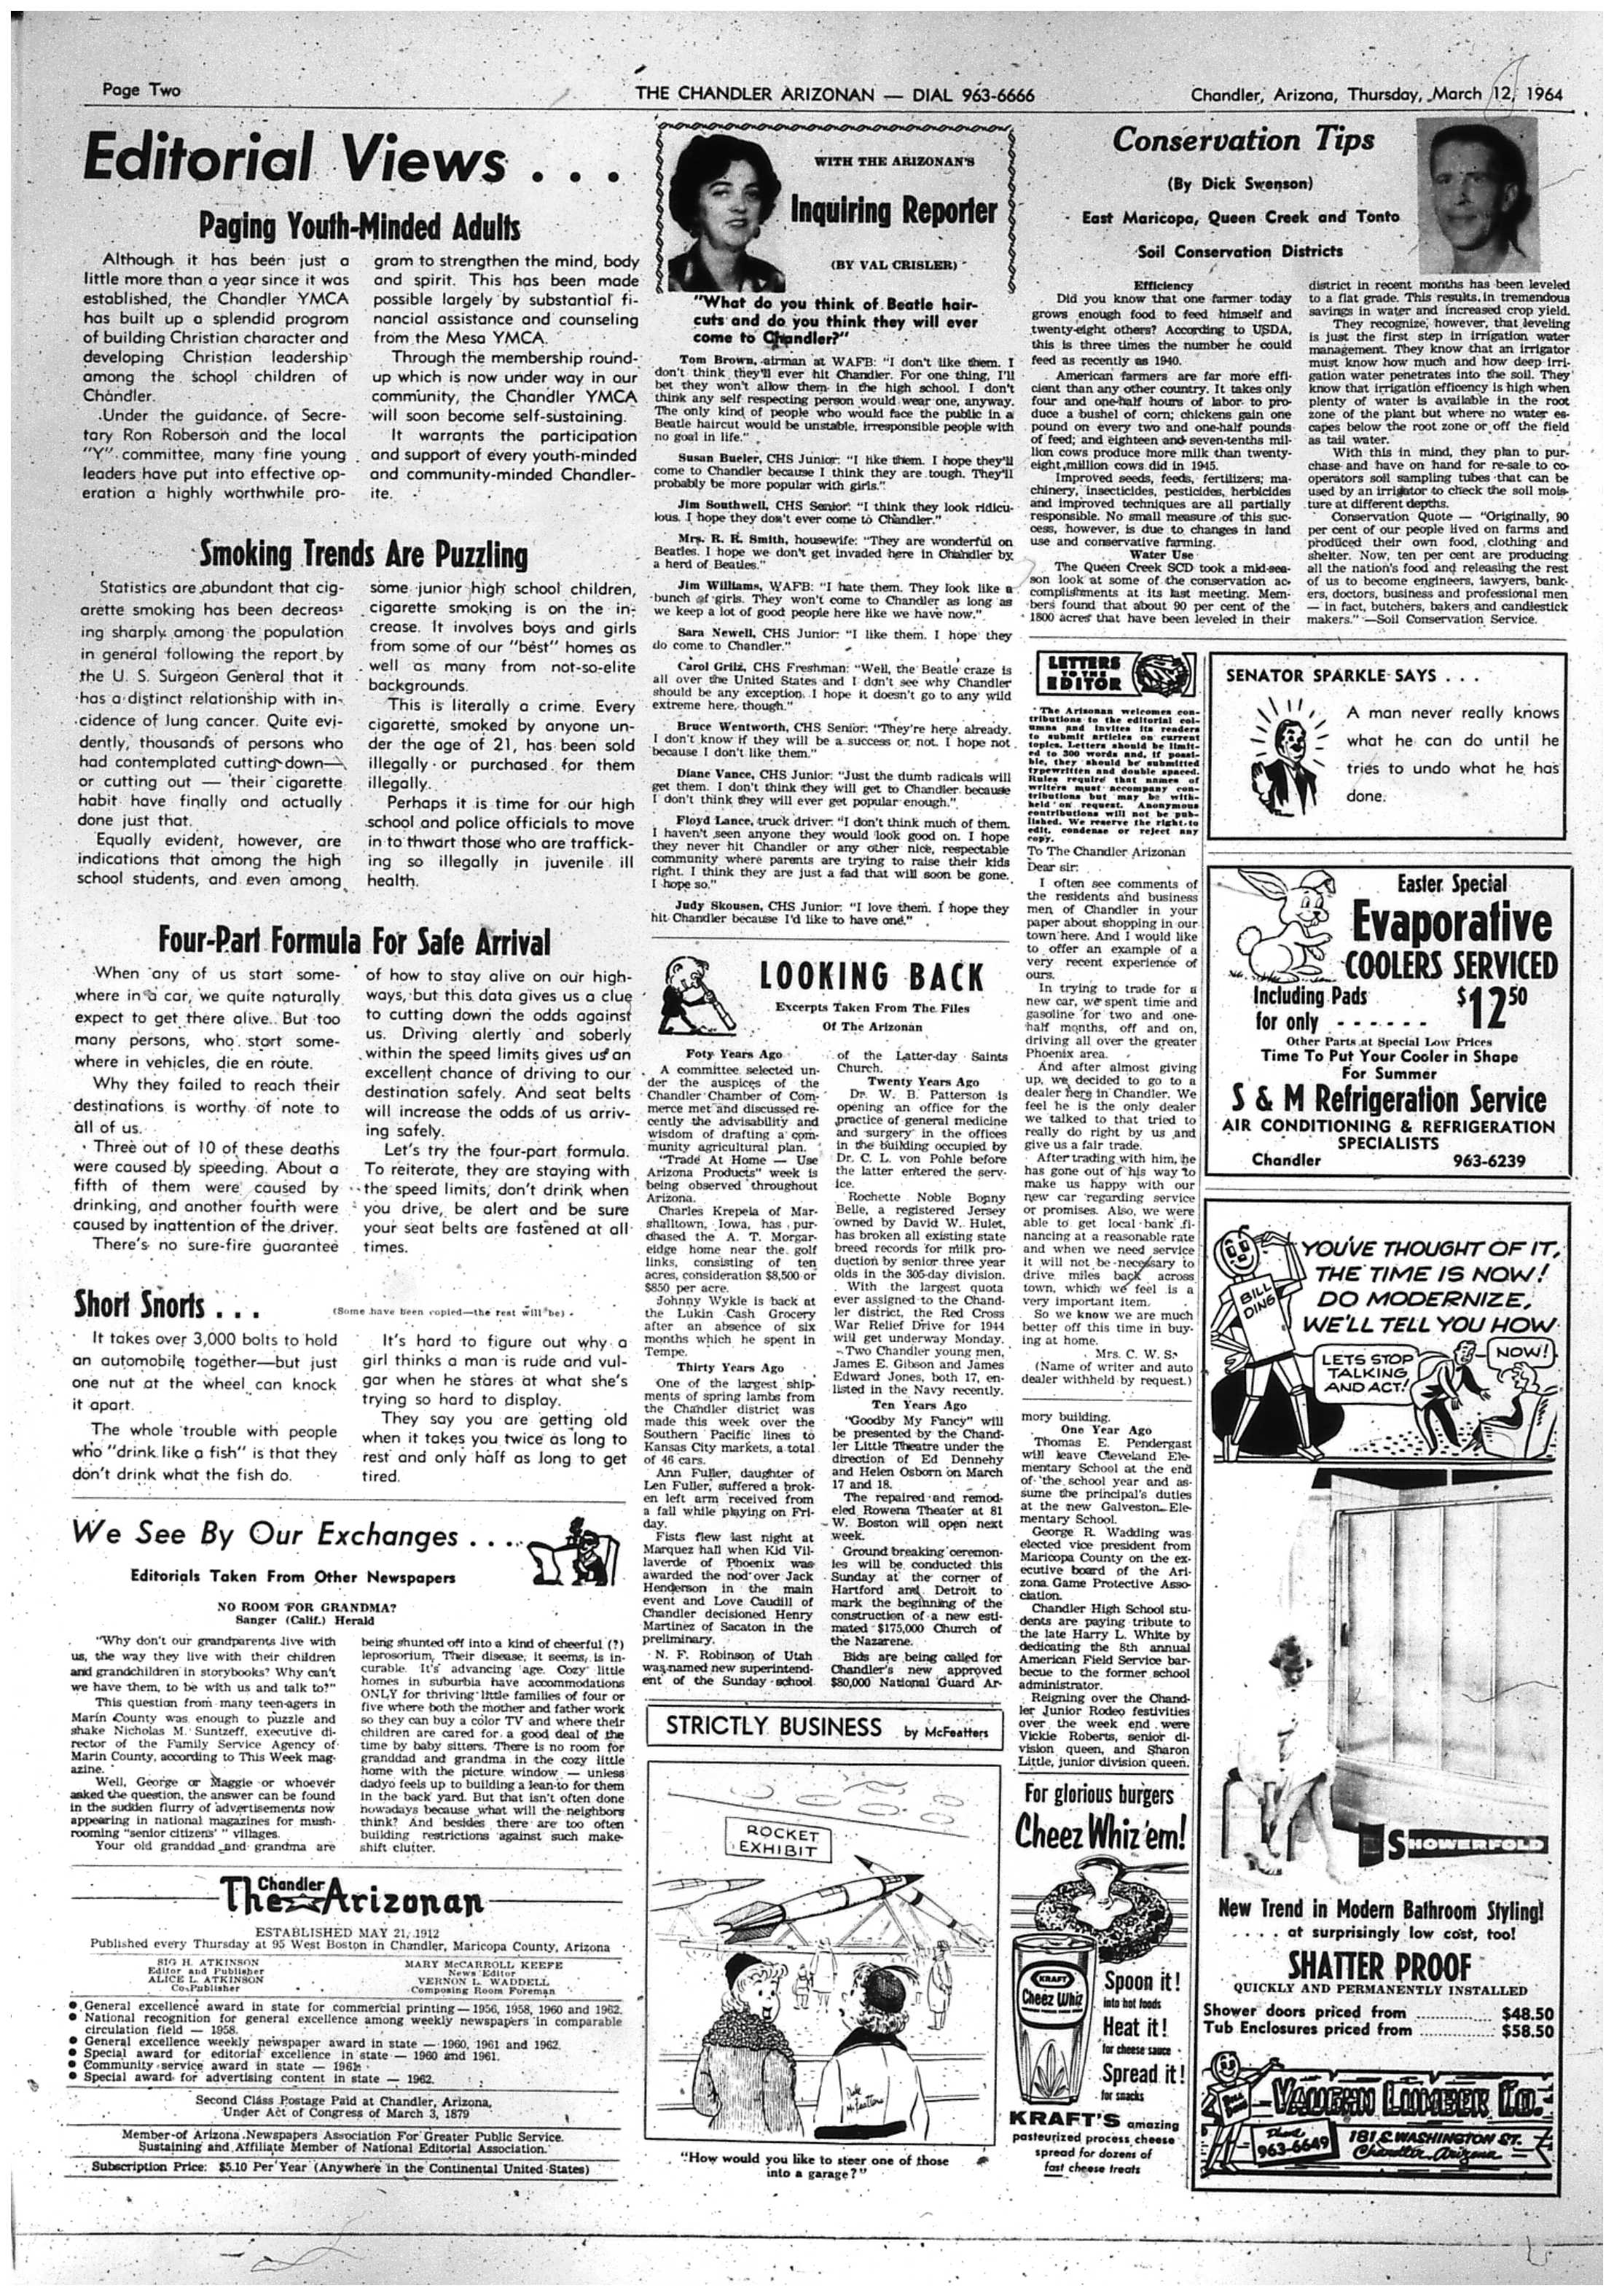 03-12-1964 - Page 2 .jpg